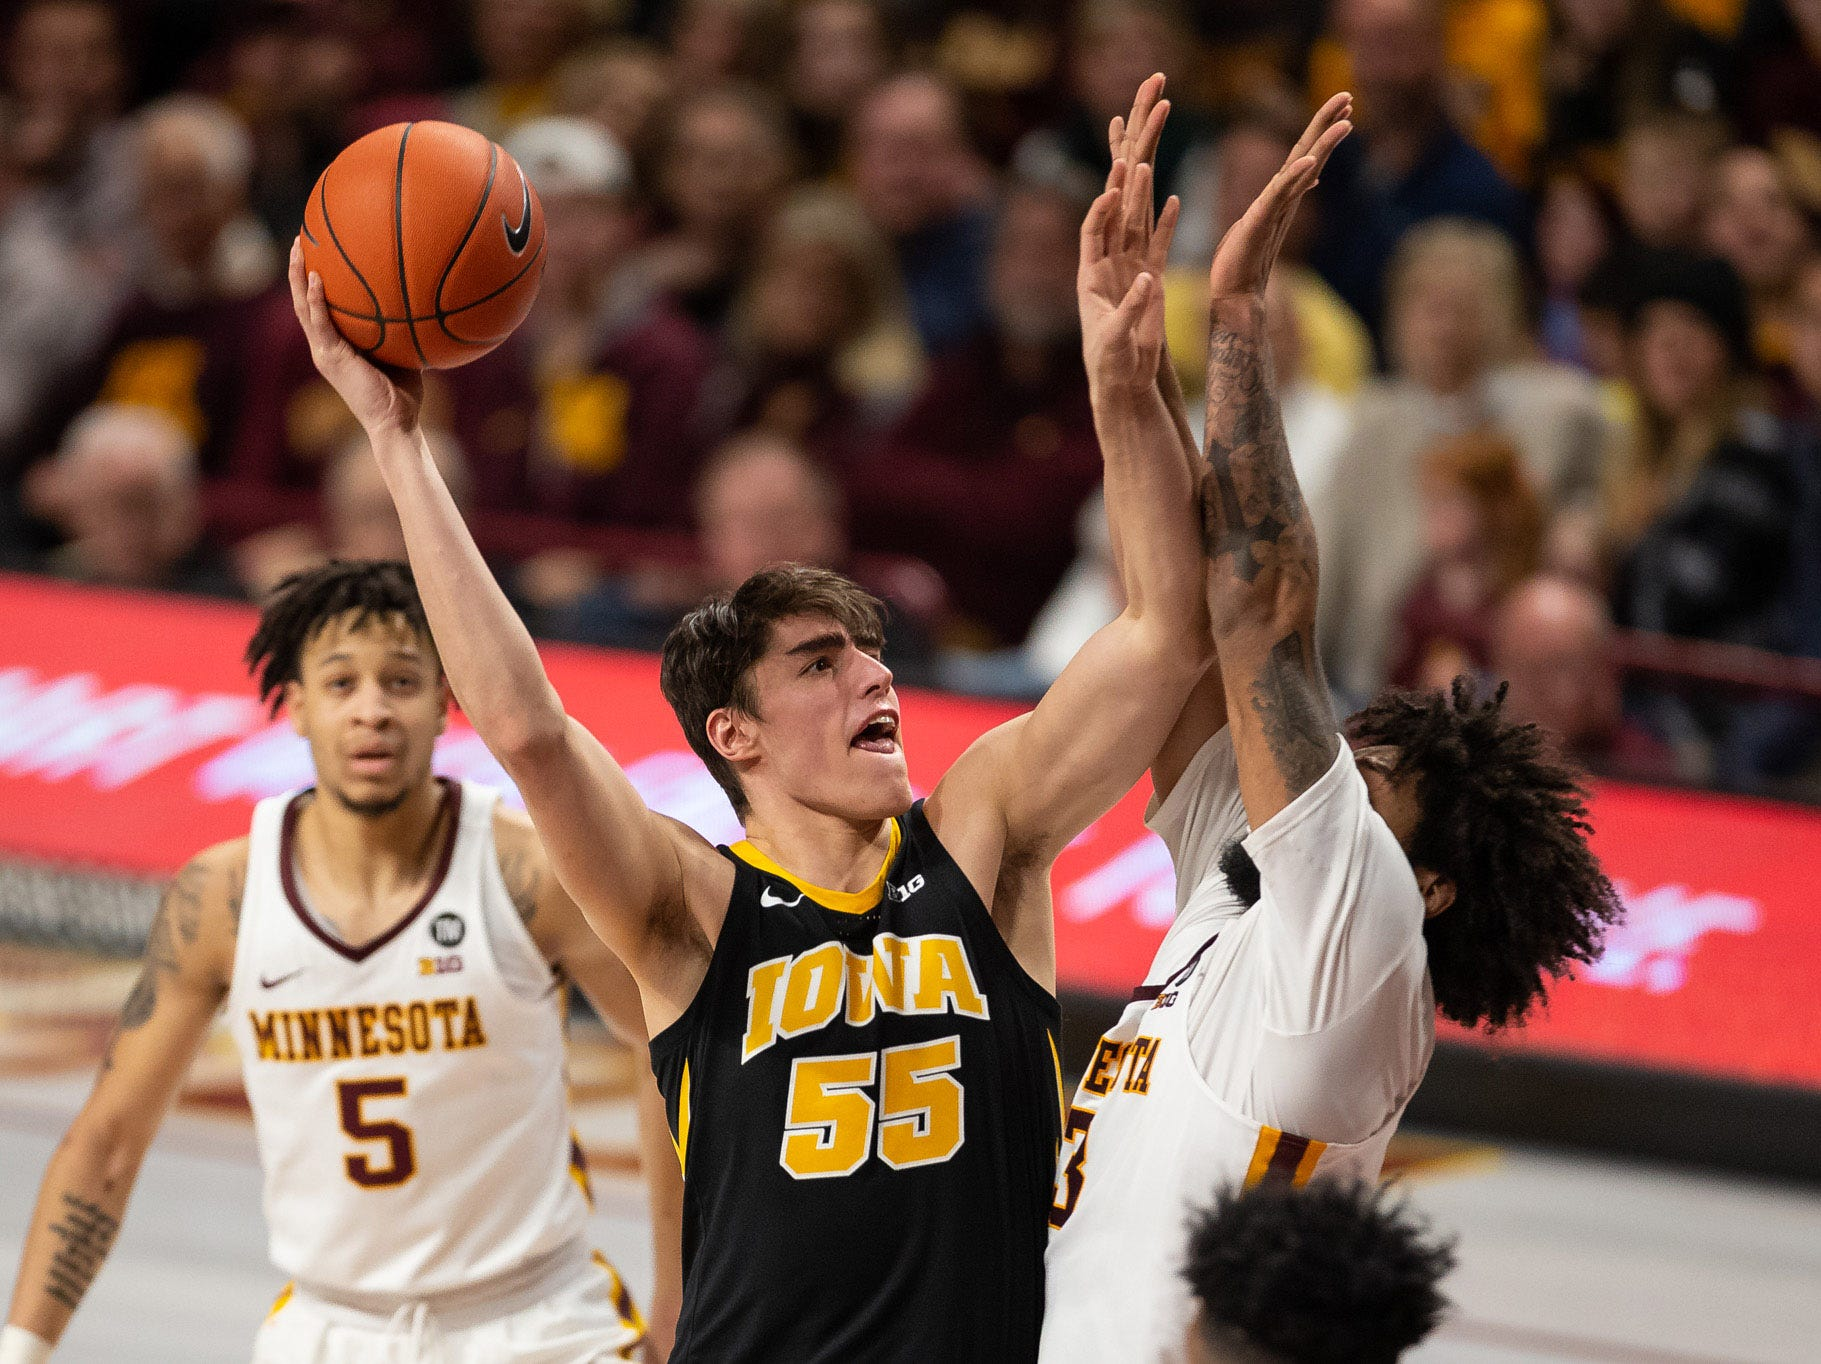 Iowa Hawkeyes forward Luka Garza (55) shoots the ball as Minnesota Gophers forward Jordan Murphy (3) defends during the second half at Williams Arena. Mandatory Credit: Harrison Barden-USA TODAY Sports